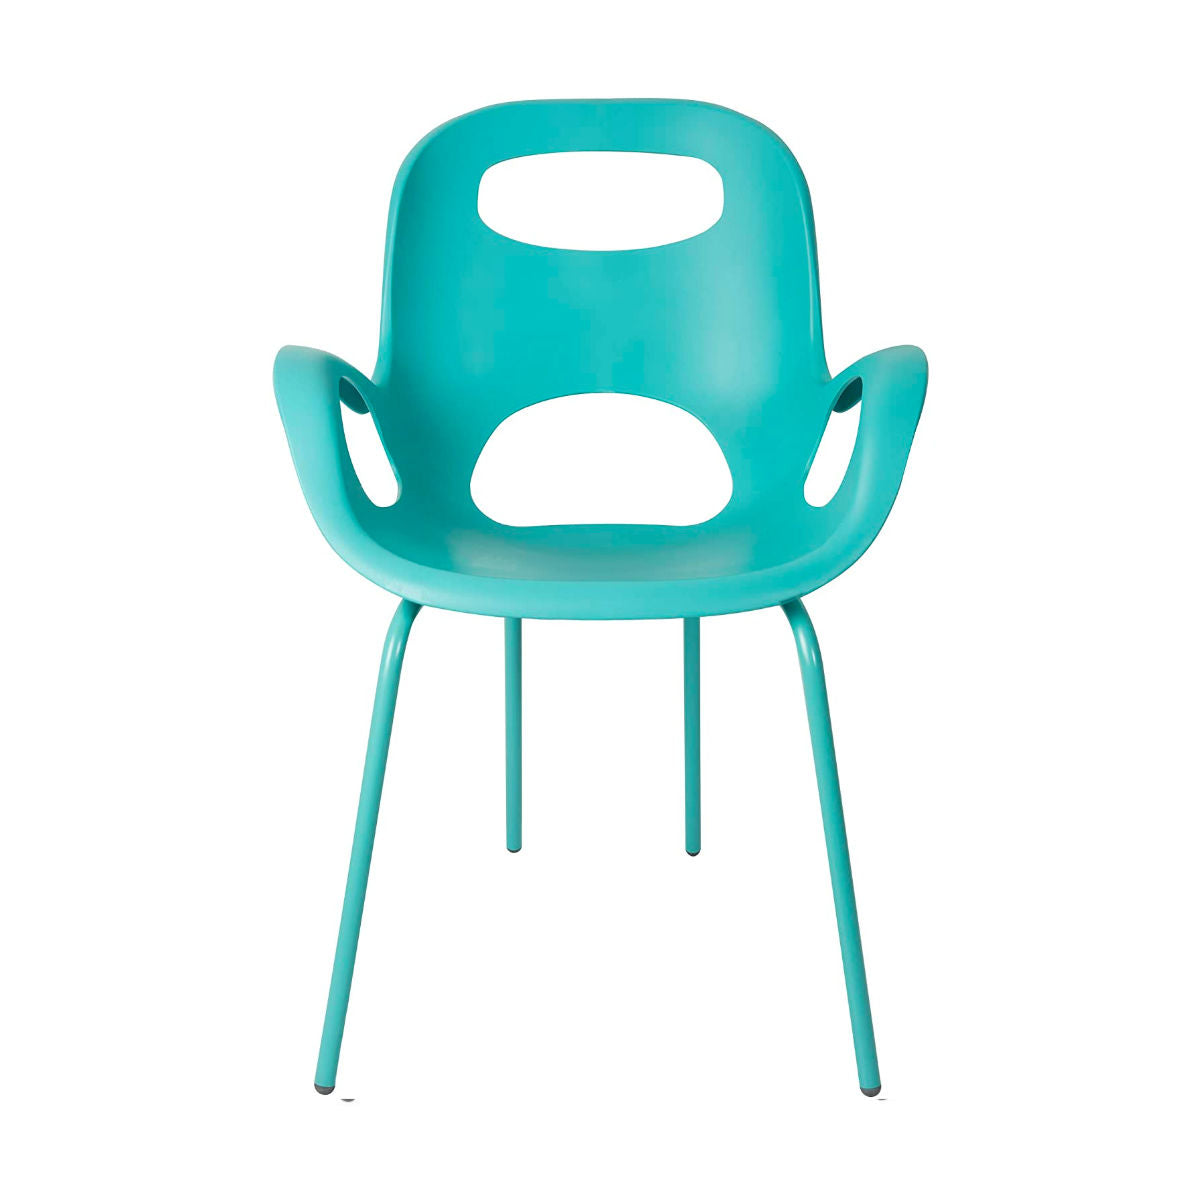 Umbra Oh Chair, surf blue